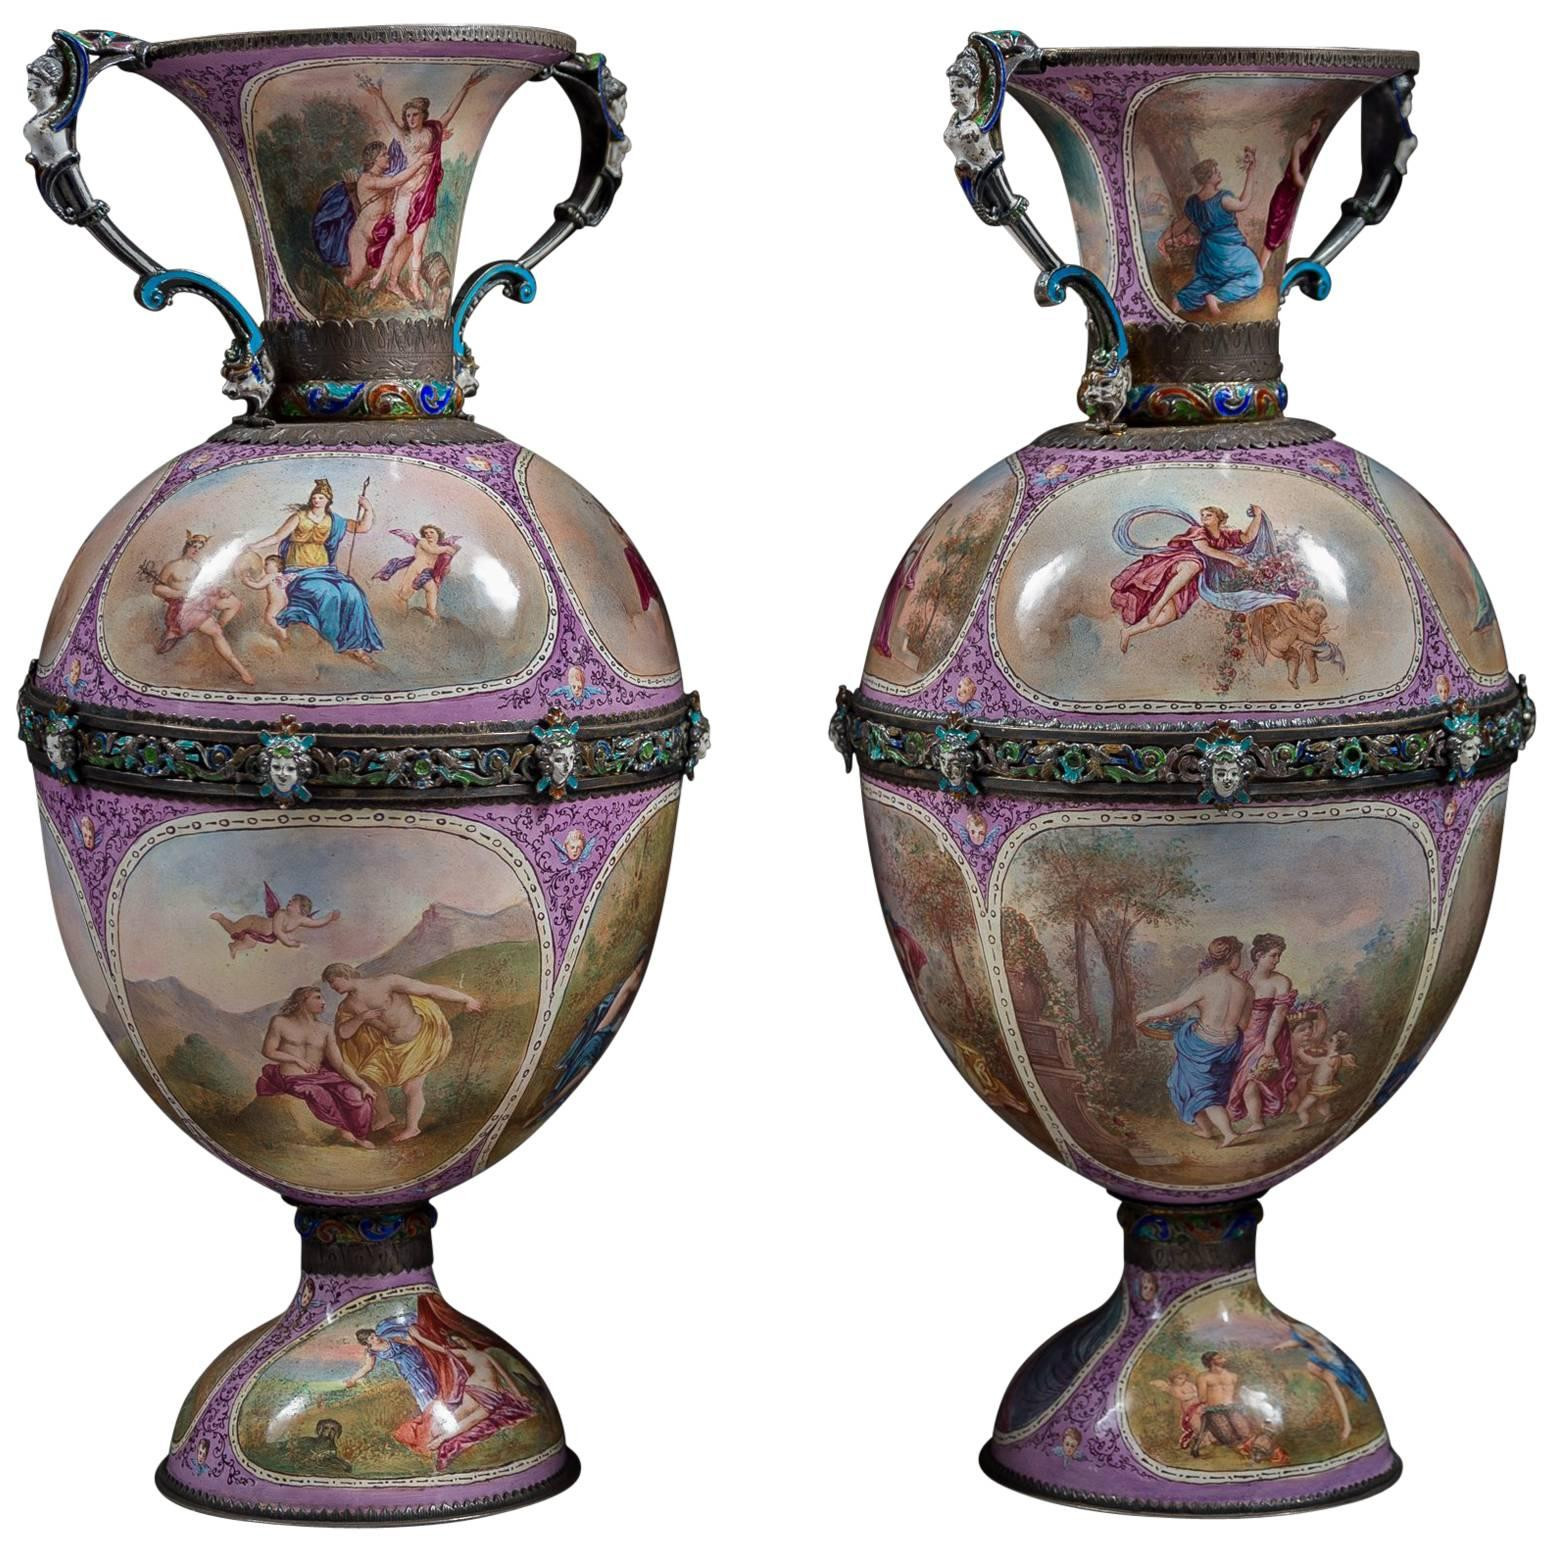 antique glass vases for sale of viennese silver enamel and rock crystal vase and cover for sale at in viennese silver enamel and rock crystal vase and cover for sale at 1stdibs